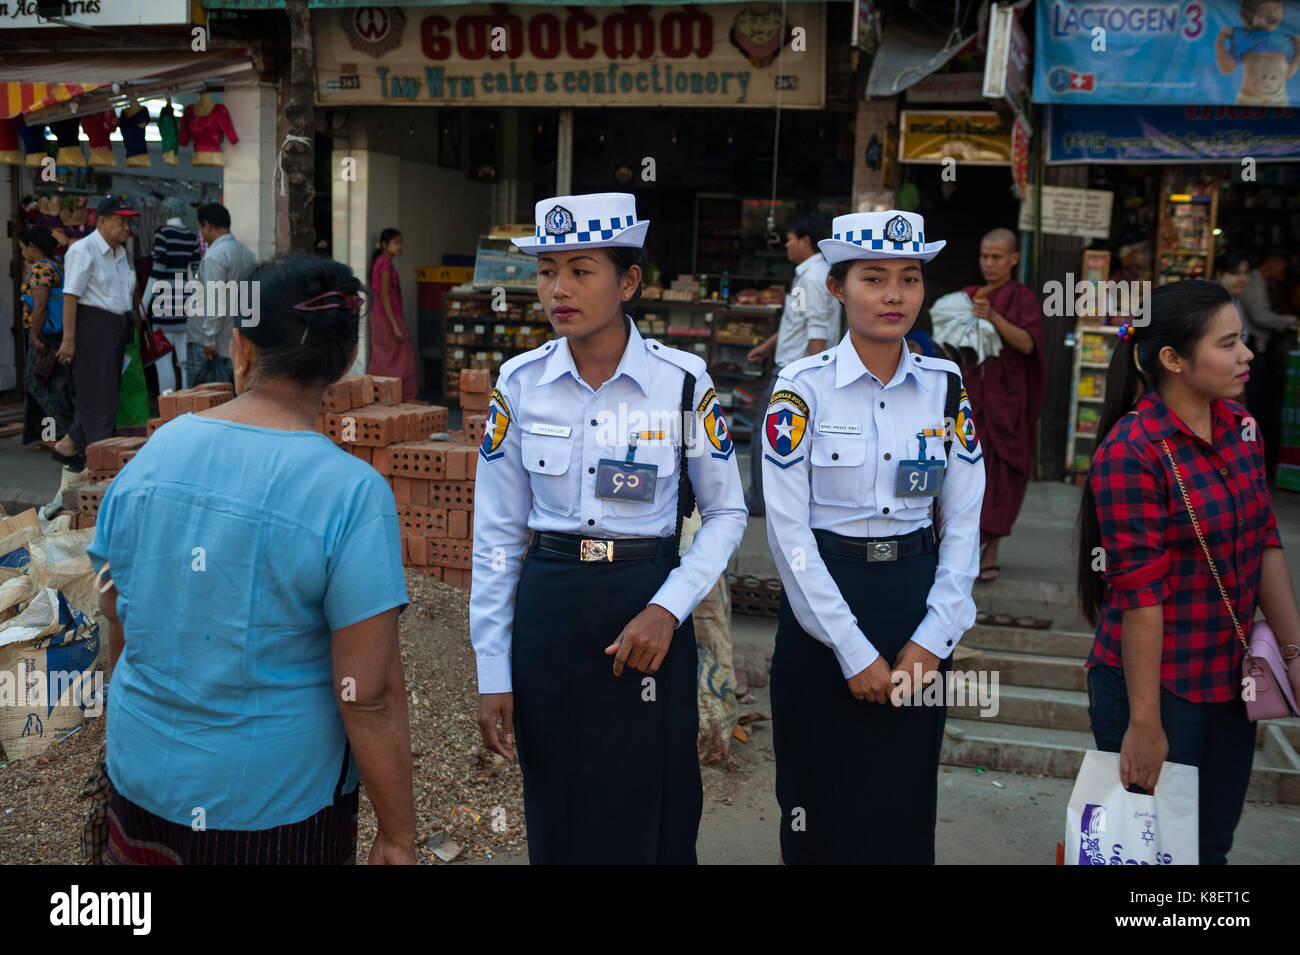 26.01.2017, Yangon, Yangon Region, Republic of the Union of Myanmar, Asia - Two female traffic police officers stand - Stock Image